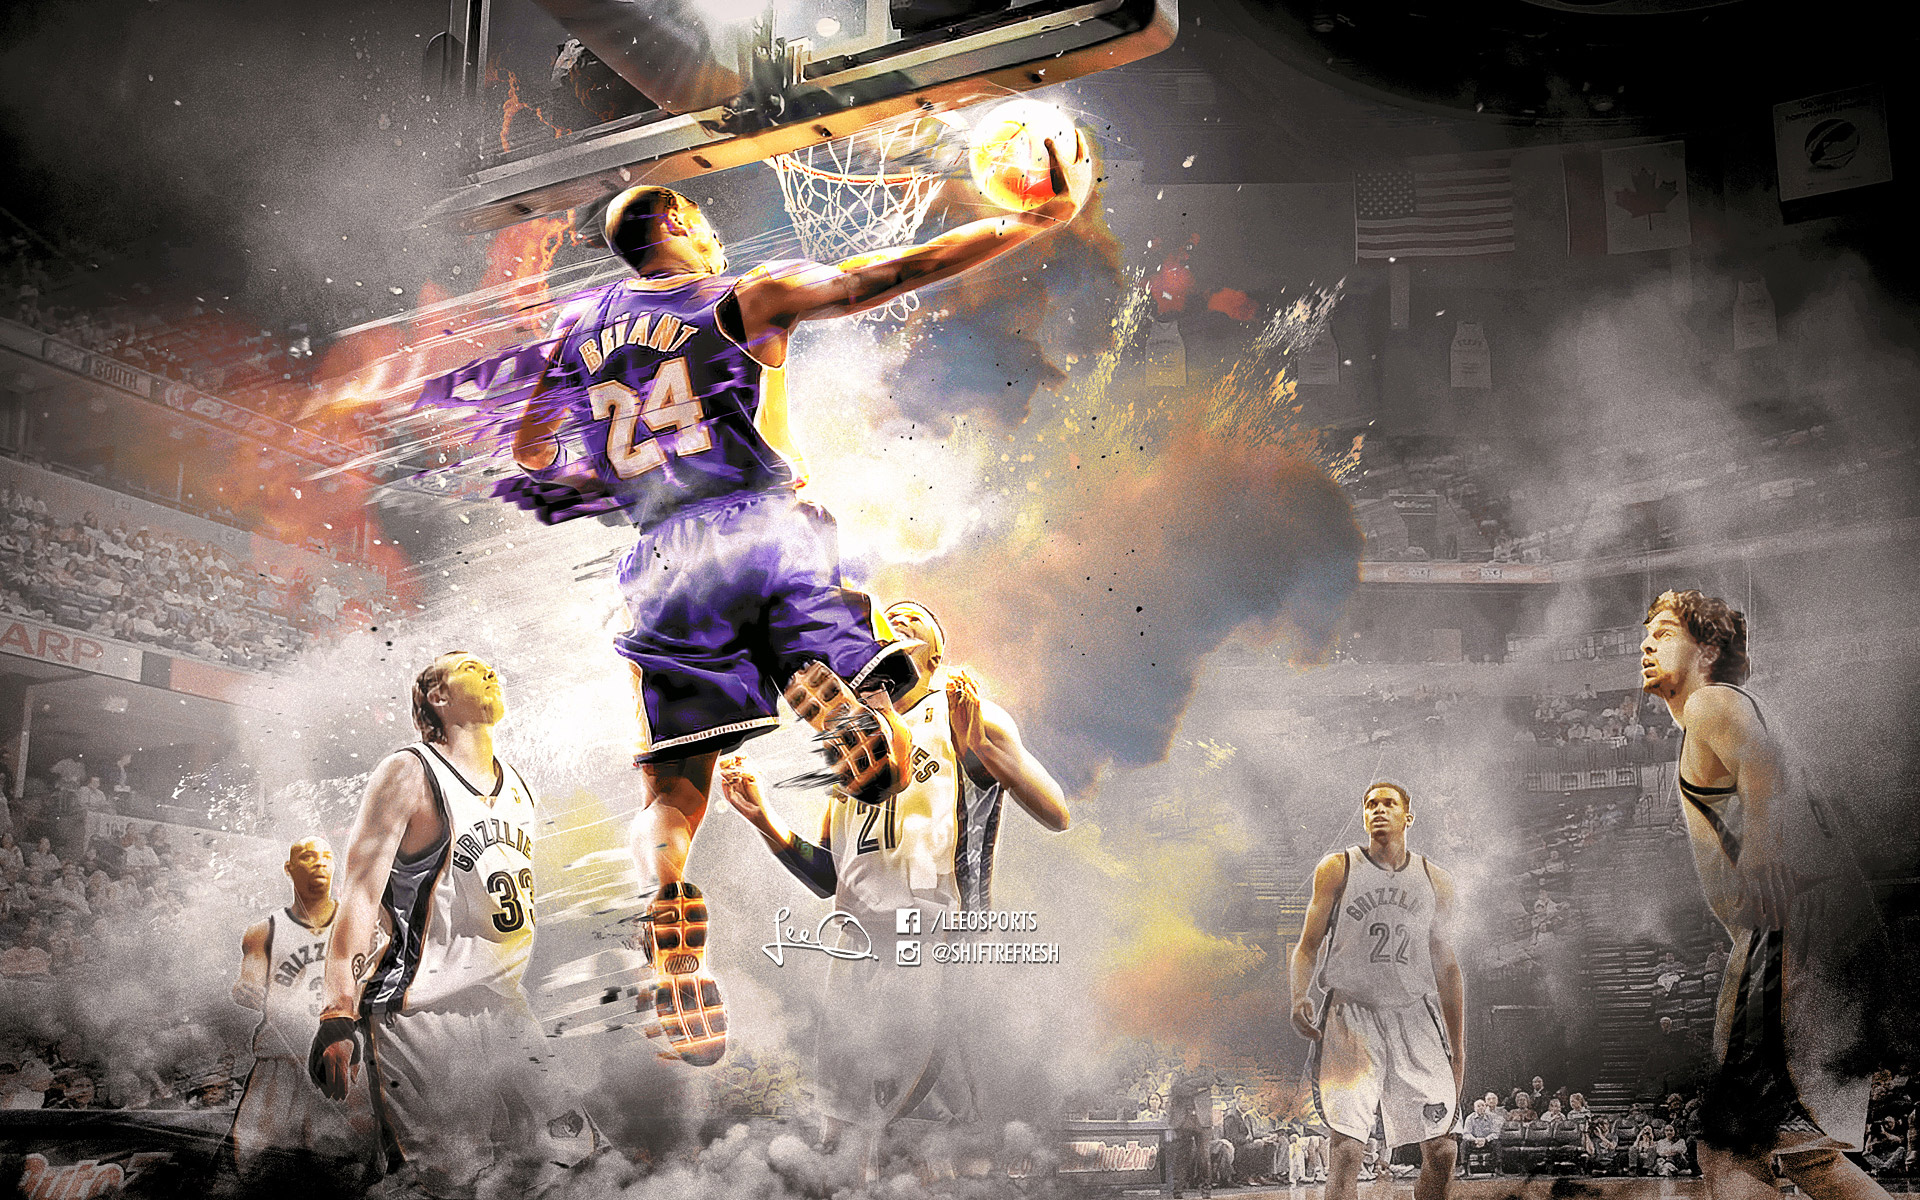 Kobe Bryant Wallpapers   Basketball Wallpapers at BasketWallpapers com Kobe Bryant 2016 Grizzlies 1920x1200 Wallpaper